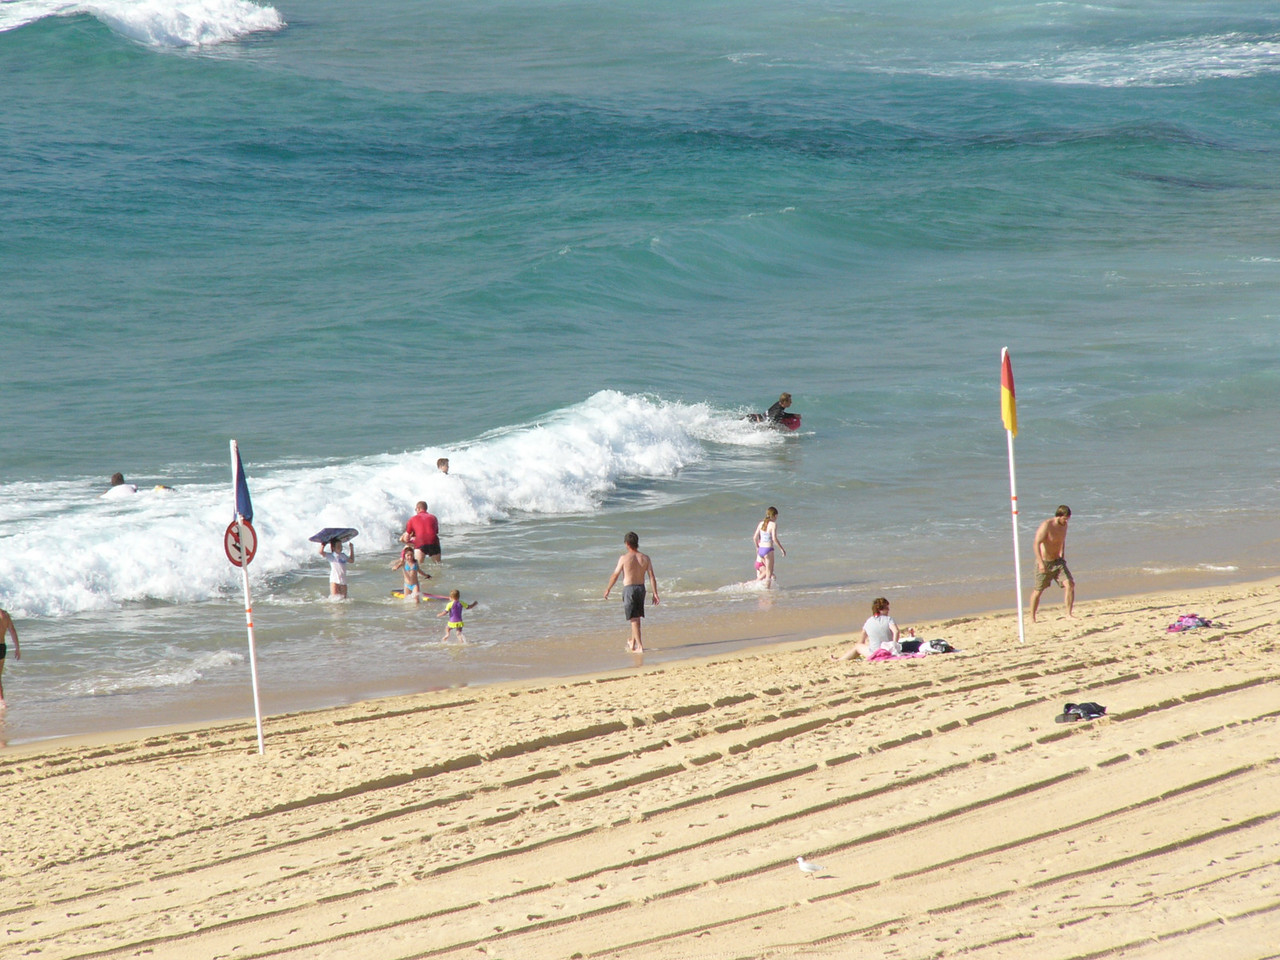 Shortland Beach, Newcastle. There are plenty of beaches around Newcastle to surf or swim, many of which are patrolled by lifesavers. Stay between the flags! 14 Jan 2005.